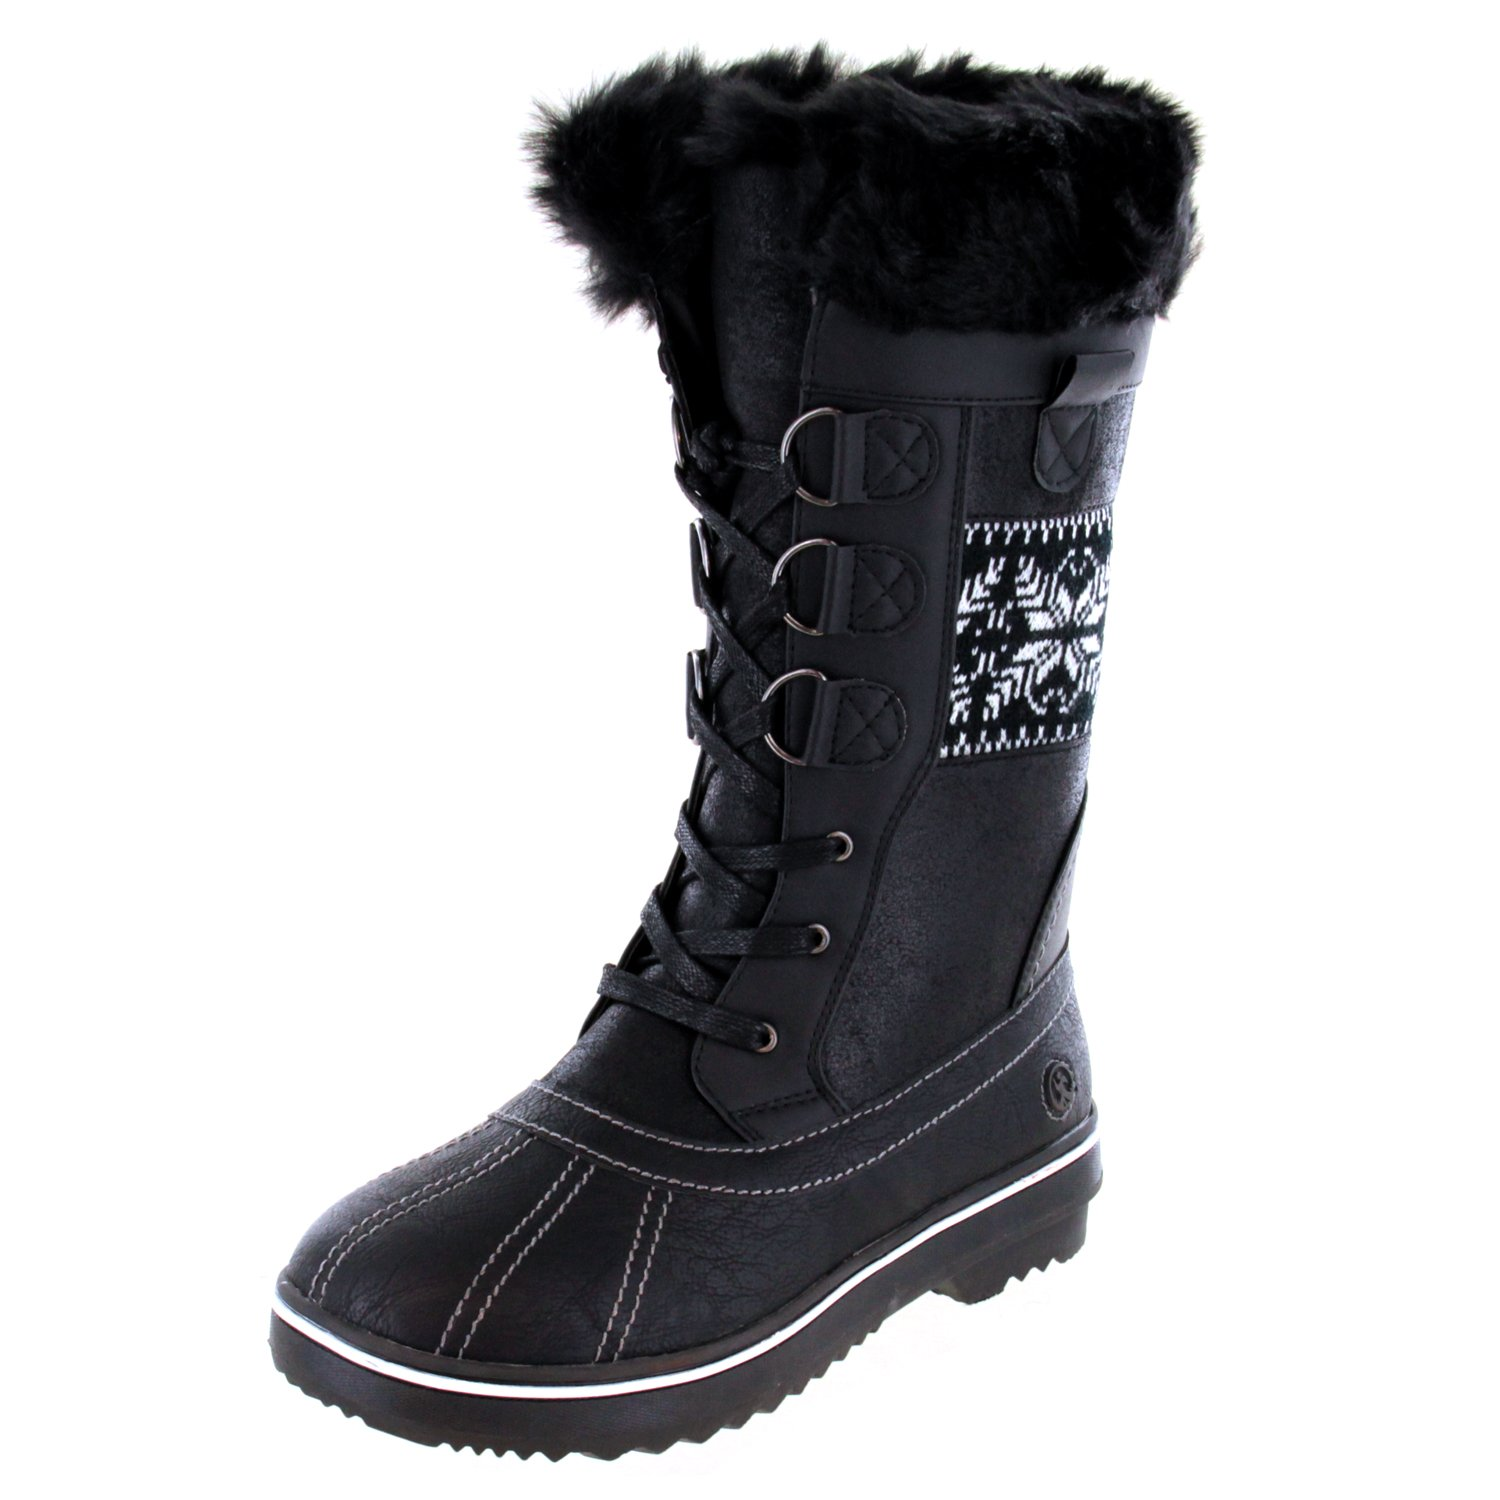 Northside Women's Bishop Snow Boot B06XP951KP 9 B(M) US|Black/Nordic